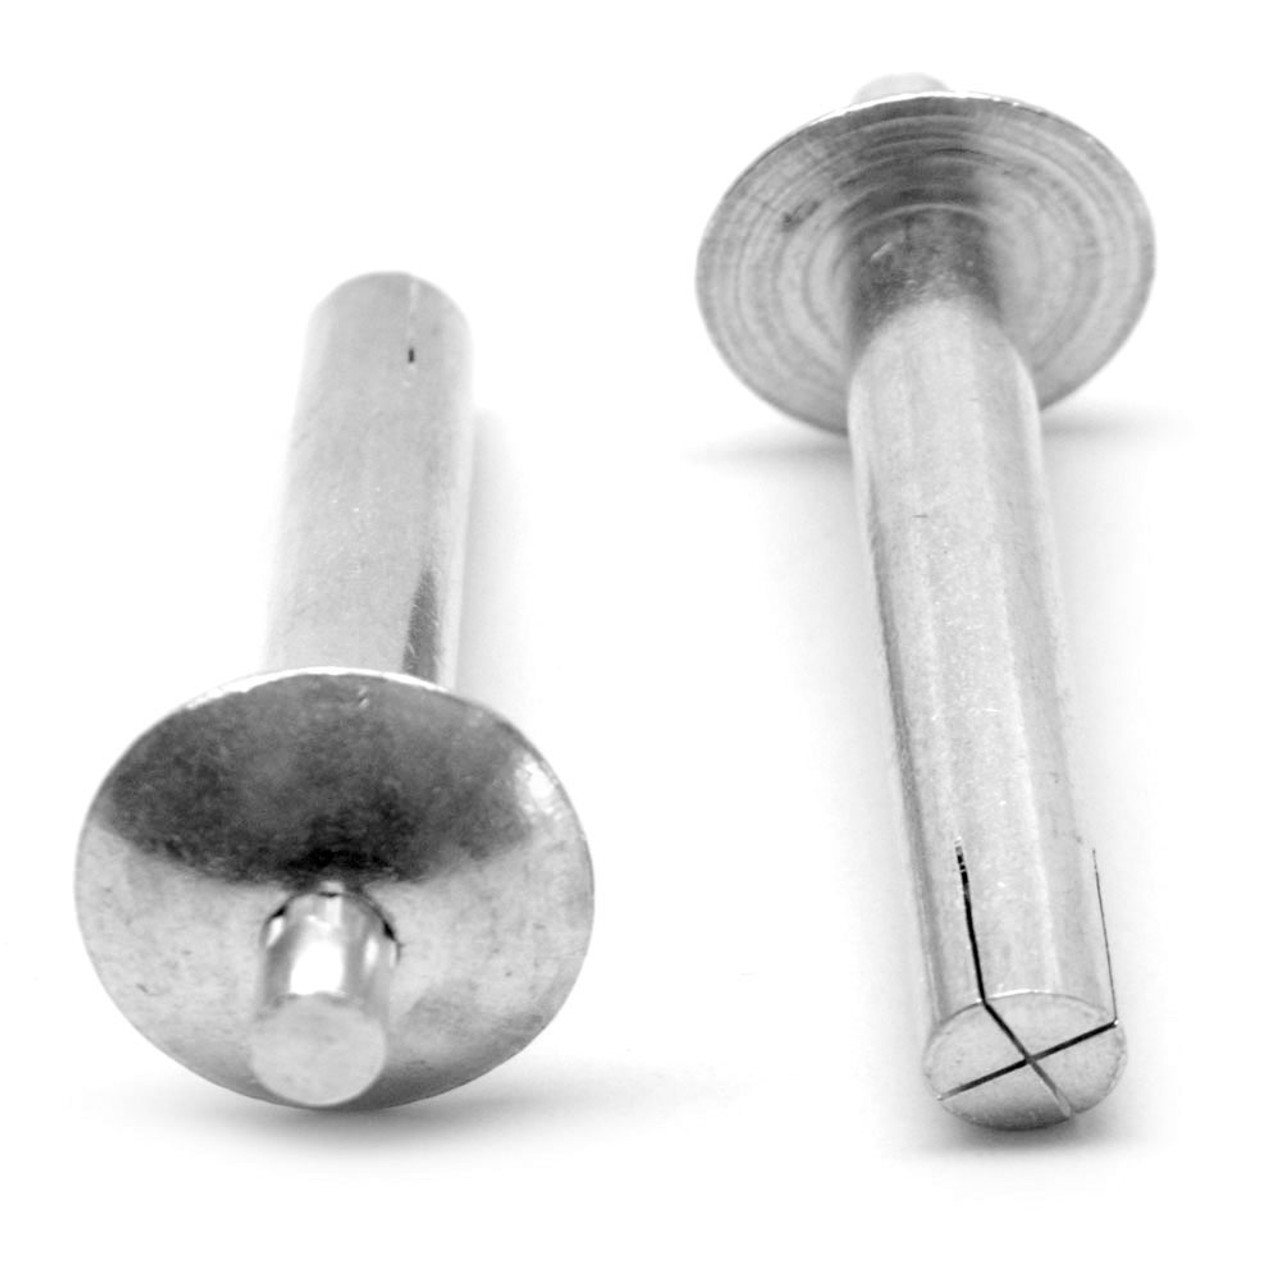 1/4 x 7/8 Drive Pin Rivet Brazier Head with Stainless Pin Aluminum